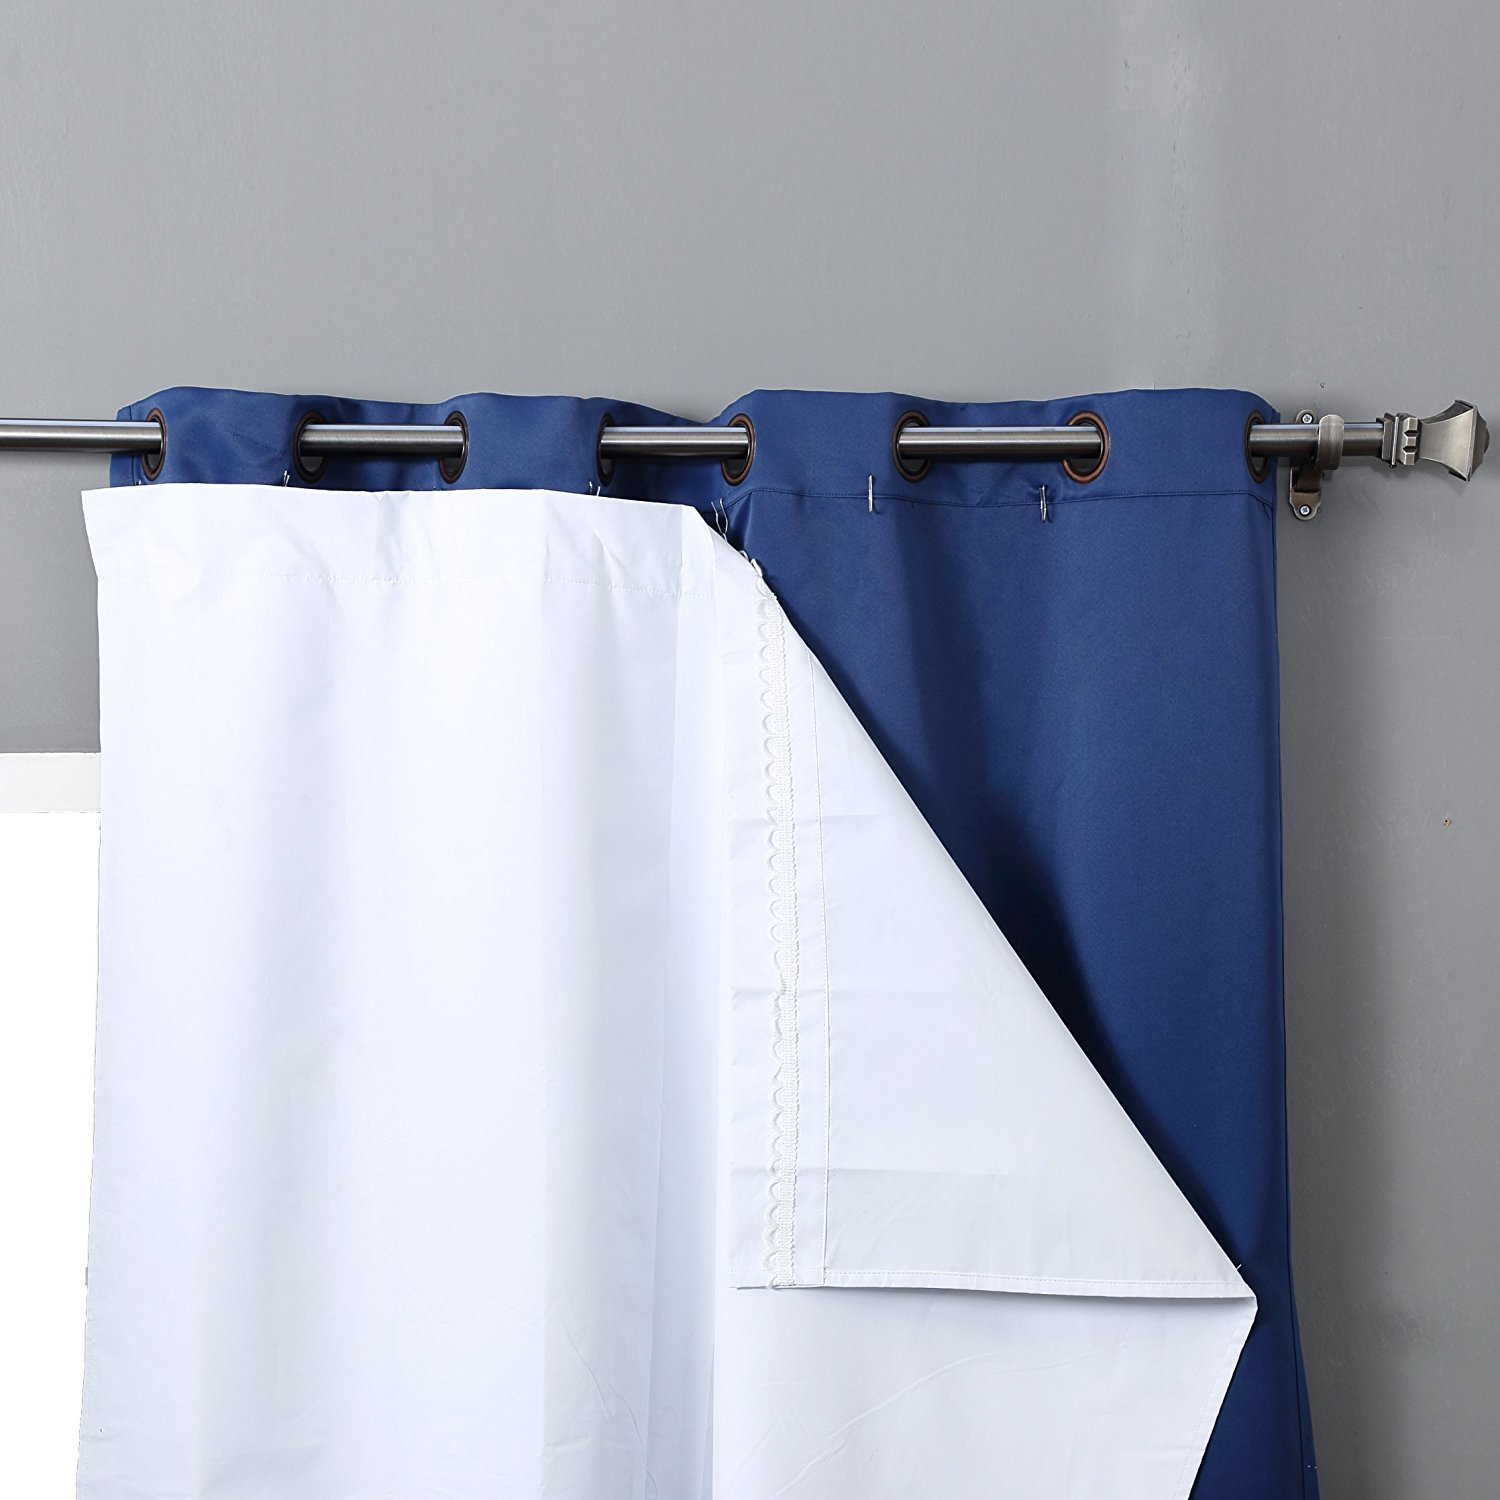 curtains unbelievable liners liner blackout panels picture curtain inch full size of rod eclipse drape drapes target targettarget at inspirations